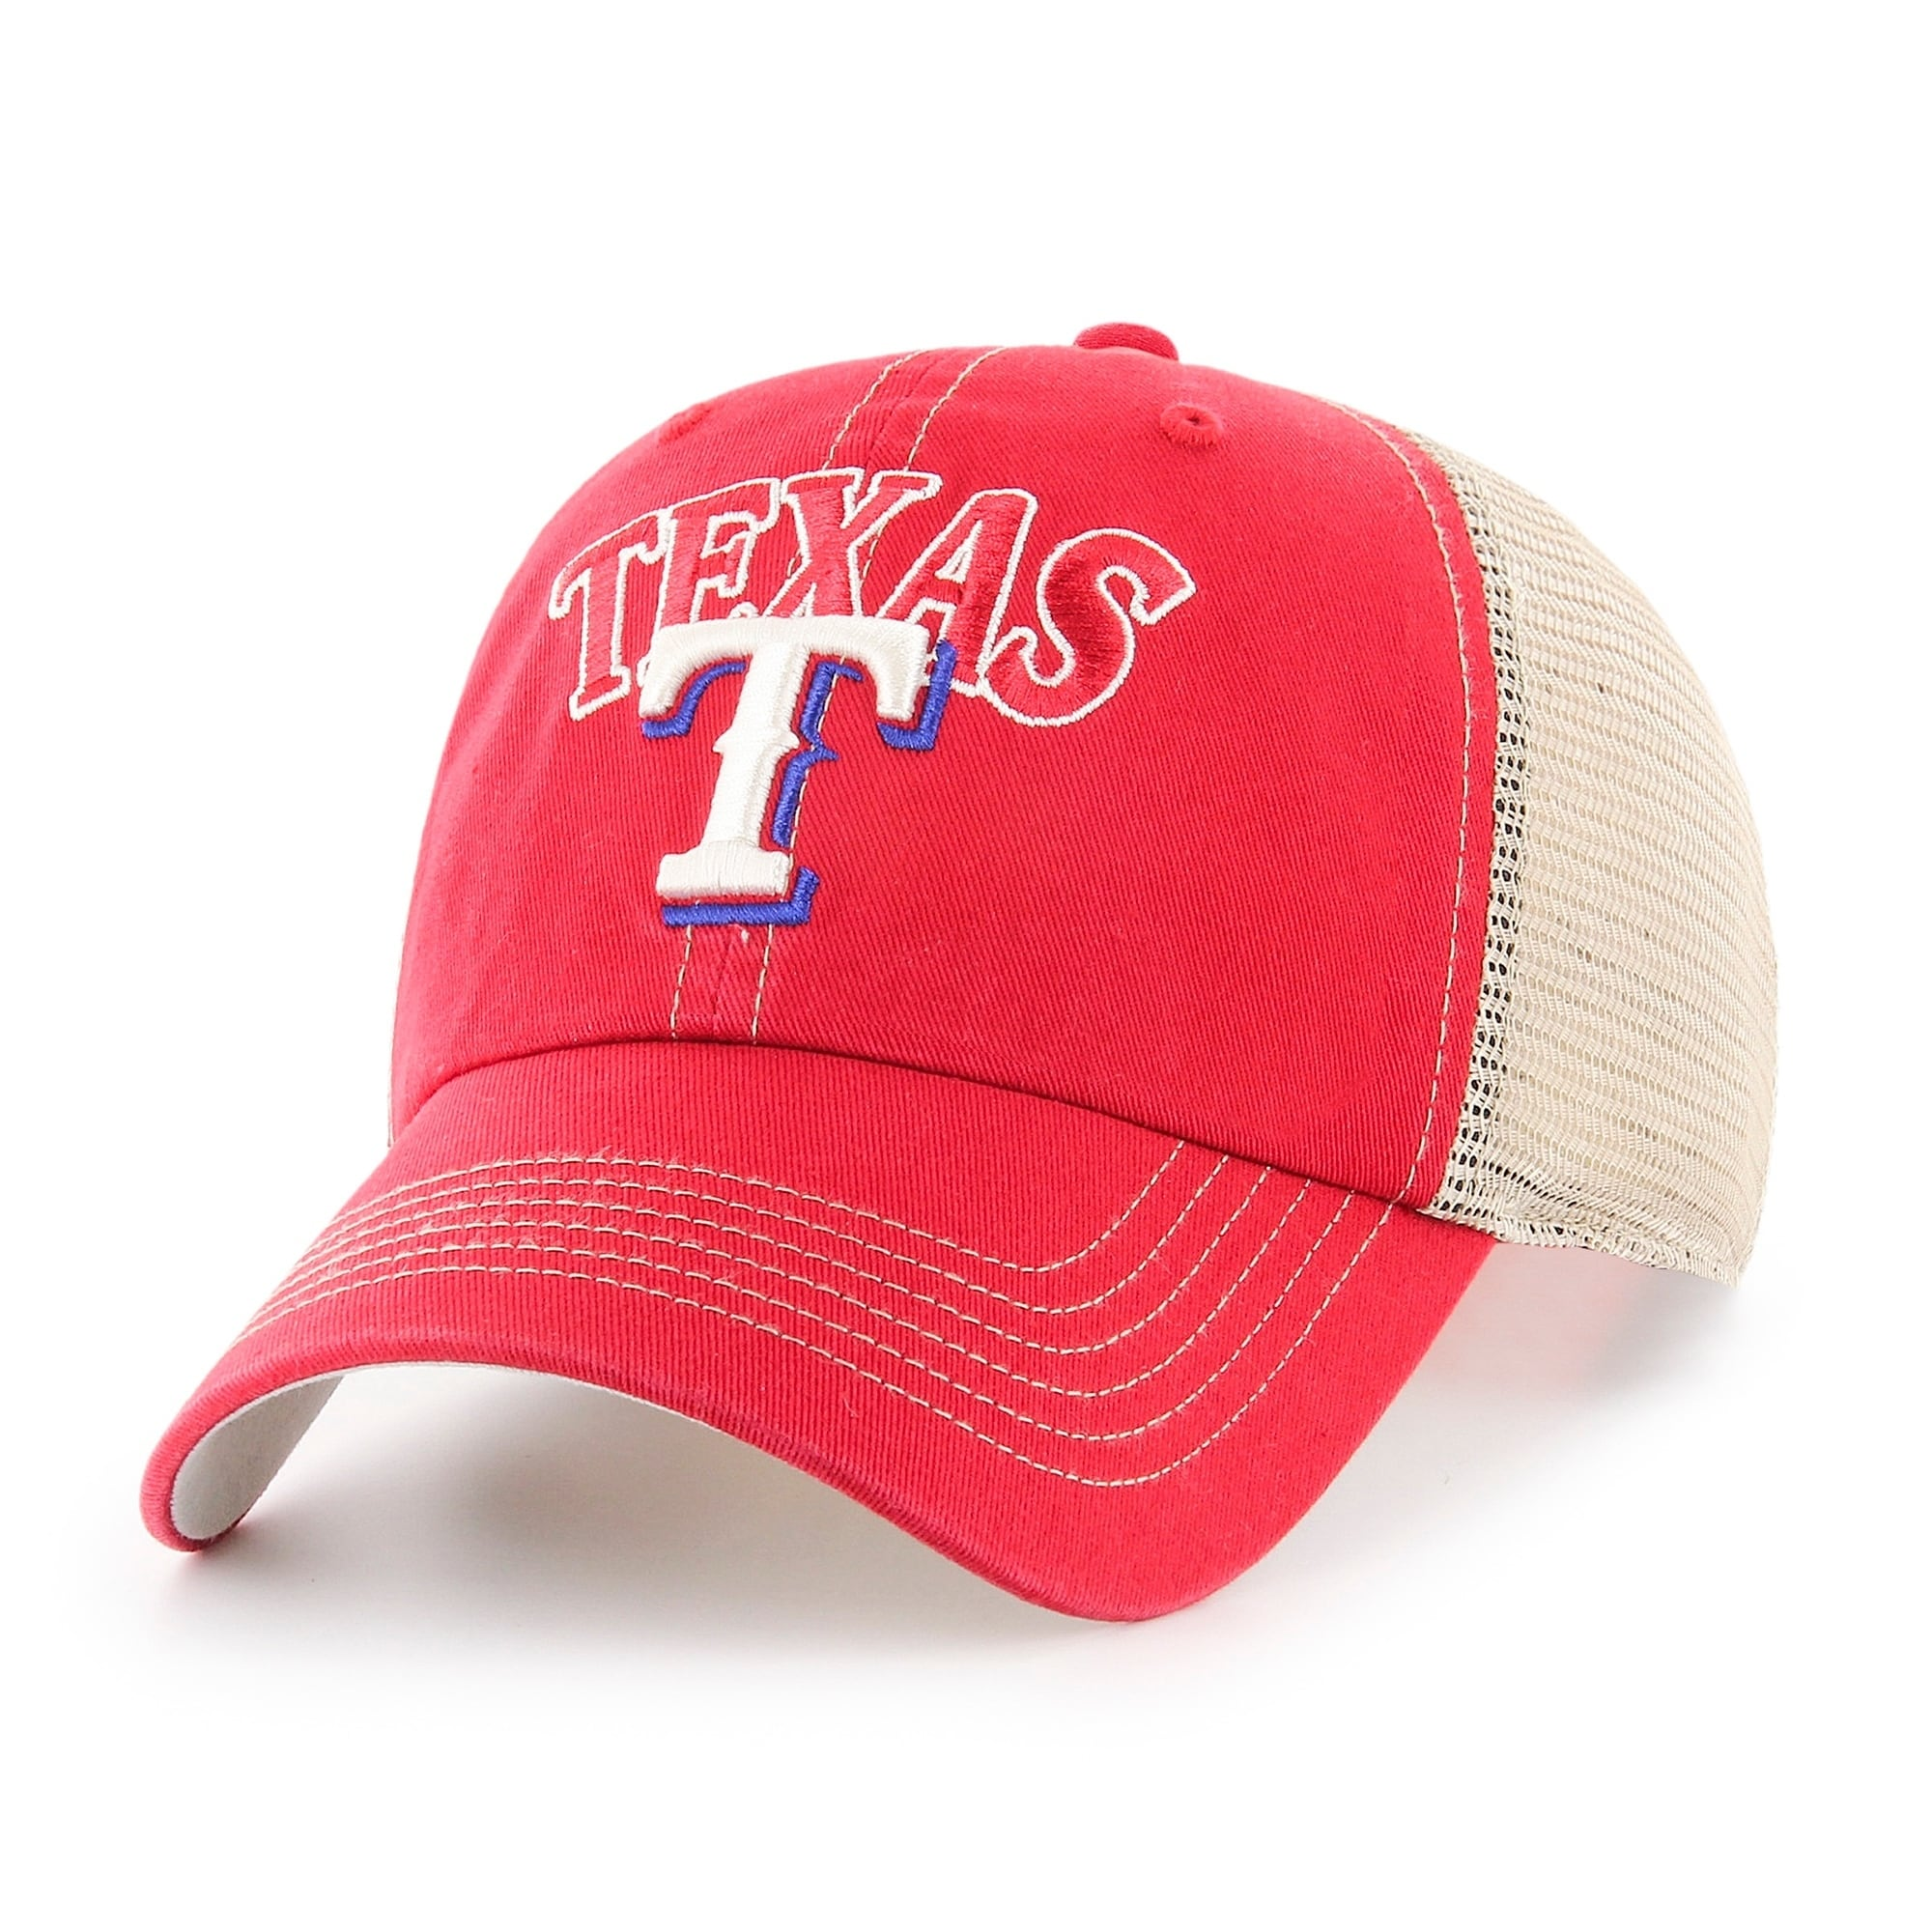 Mlb Texas Rangers Aliquippa Adjustable Cap Multi On Sale Overstock 23505767